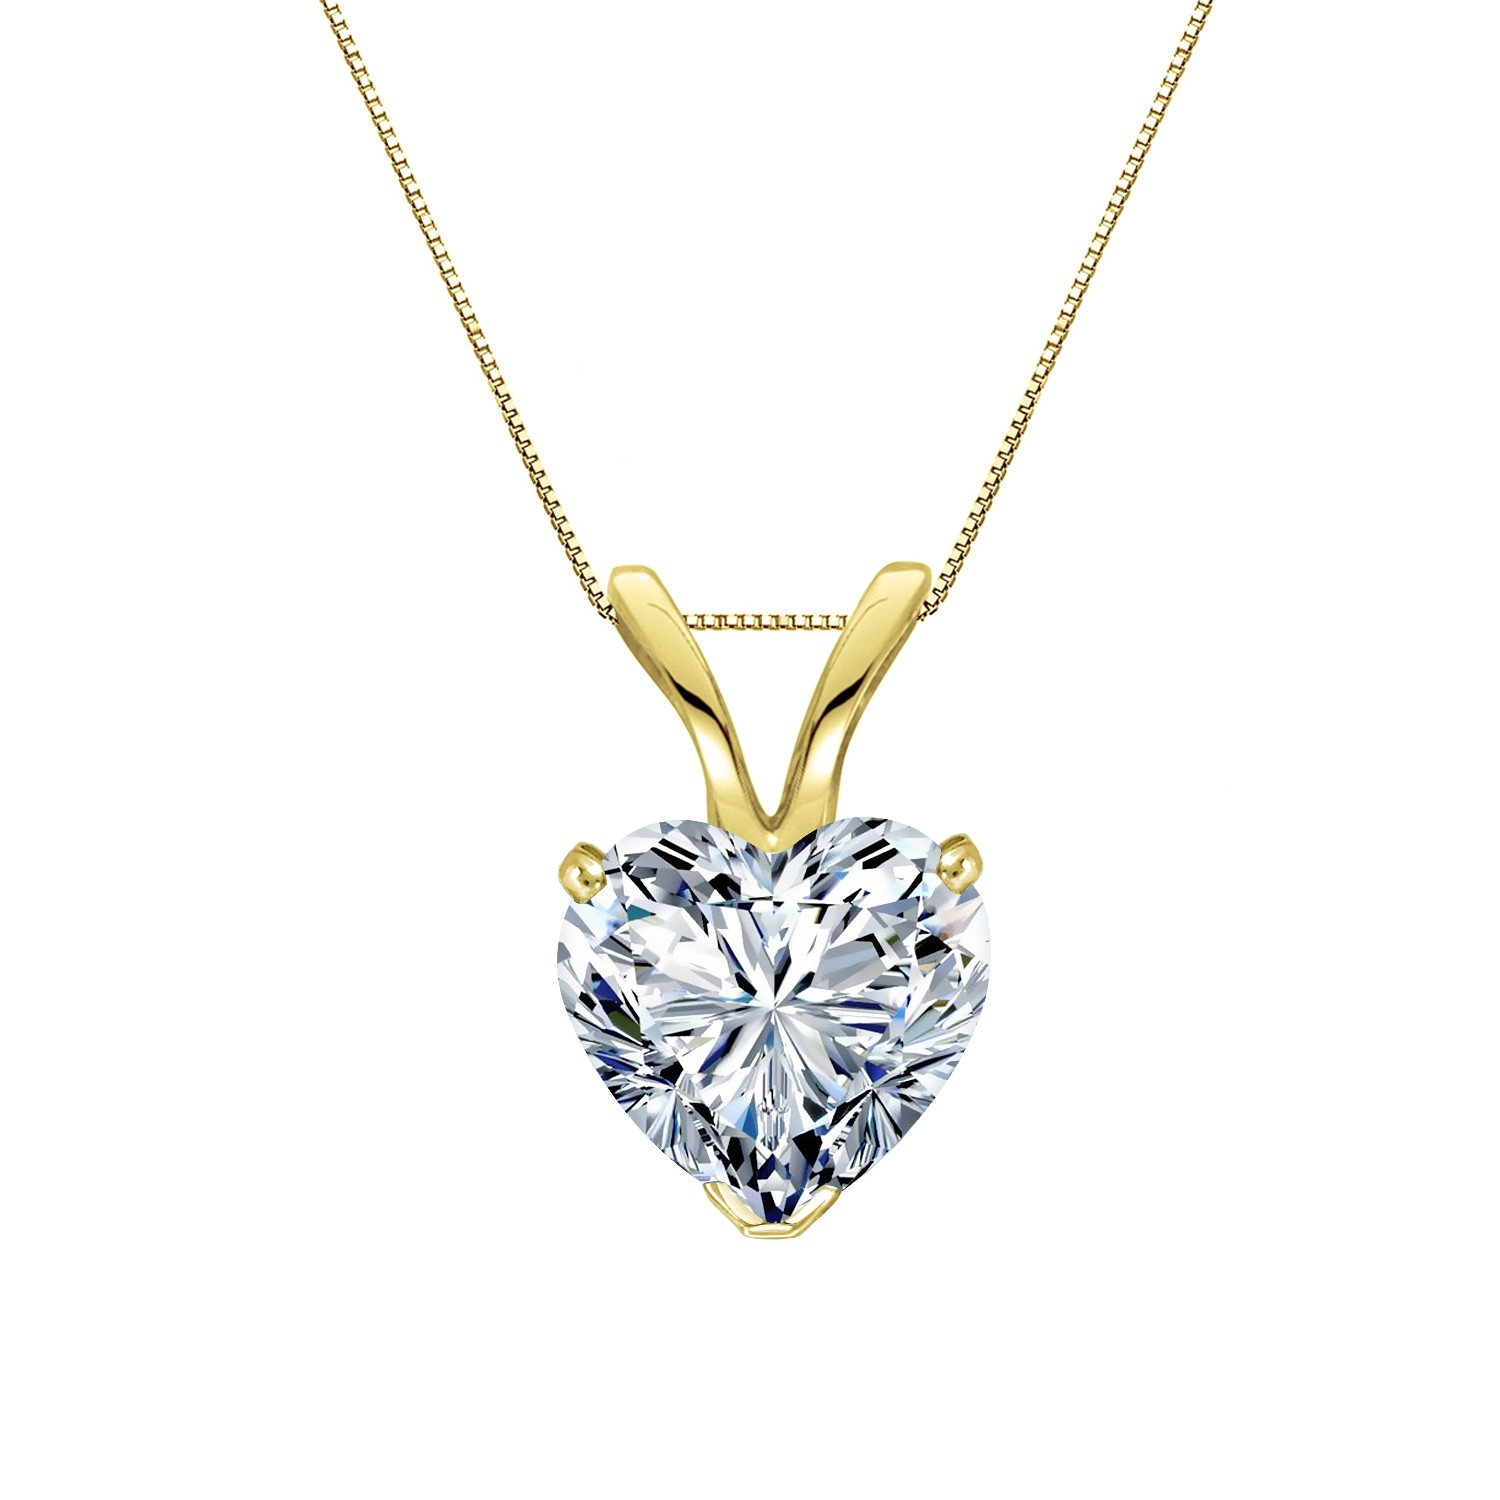 EGL USA Certified 14k Yellow Gold Heart Shape Diamond Solitaire Pendant 1.20 ct. tw. (F, SI2)